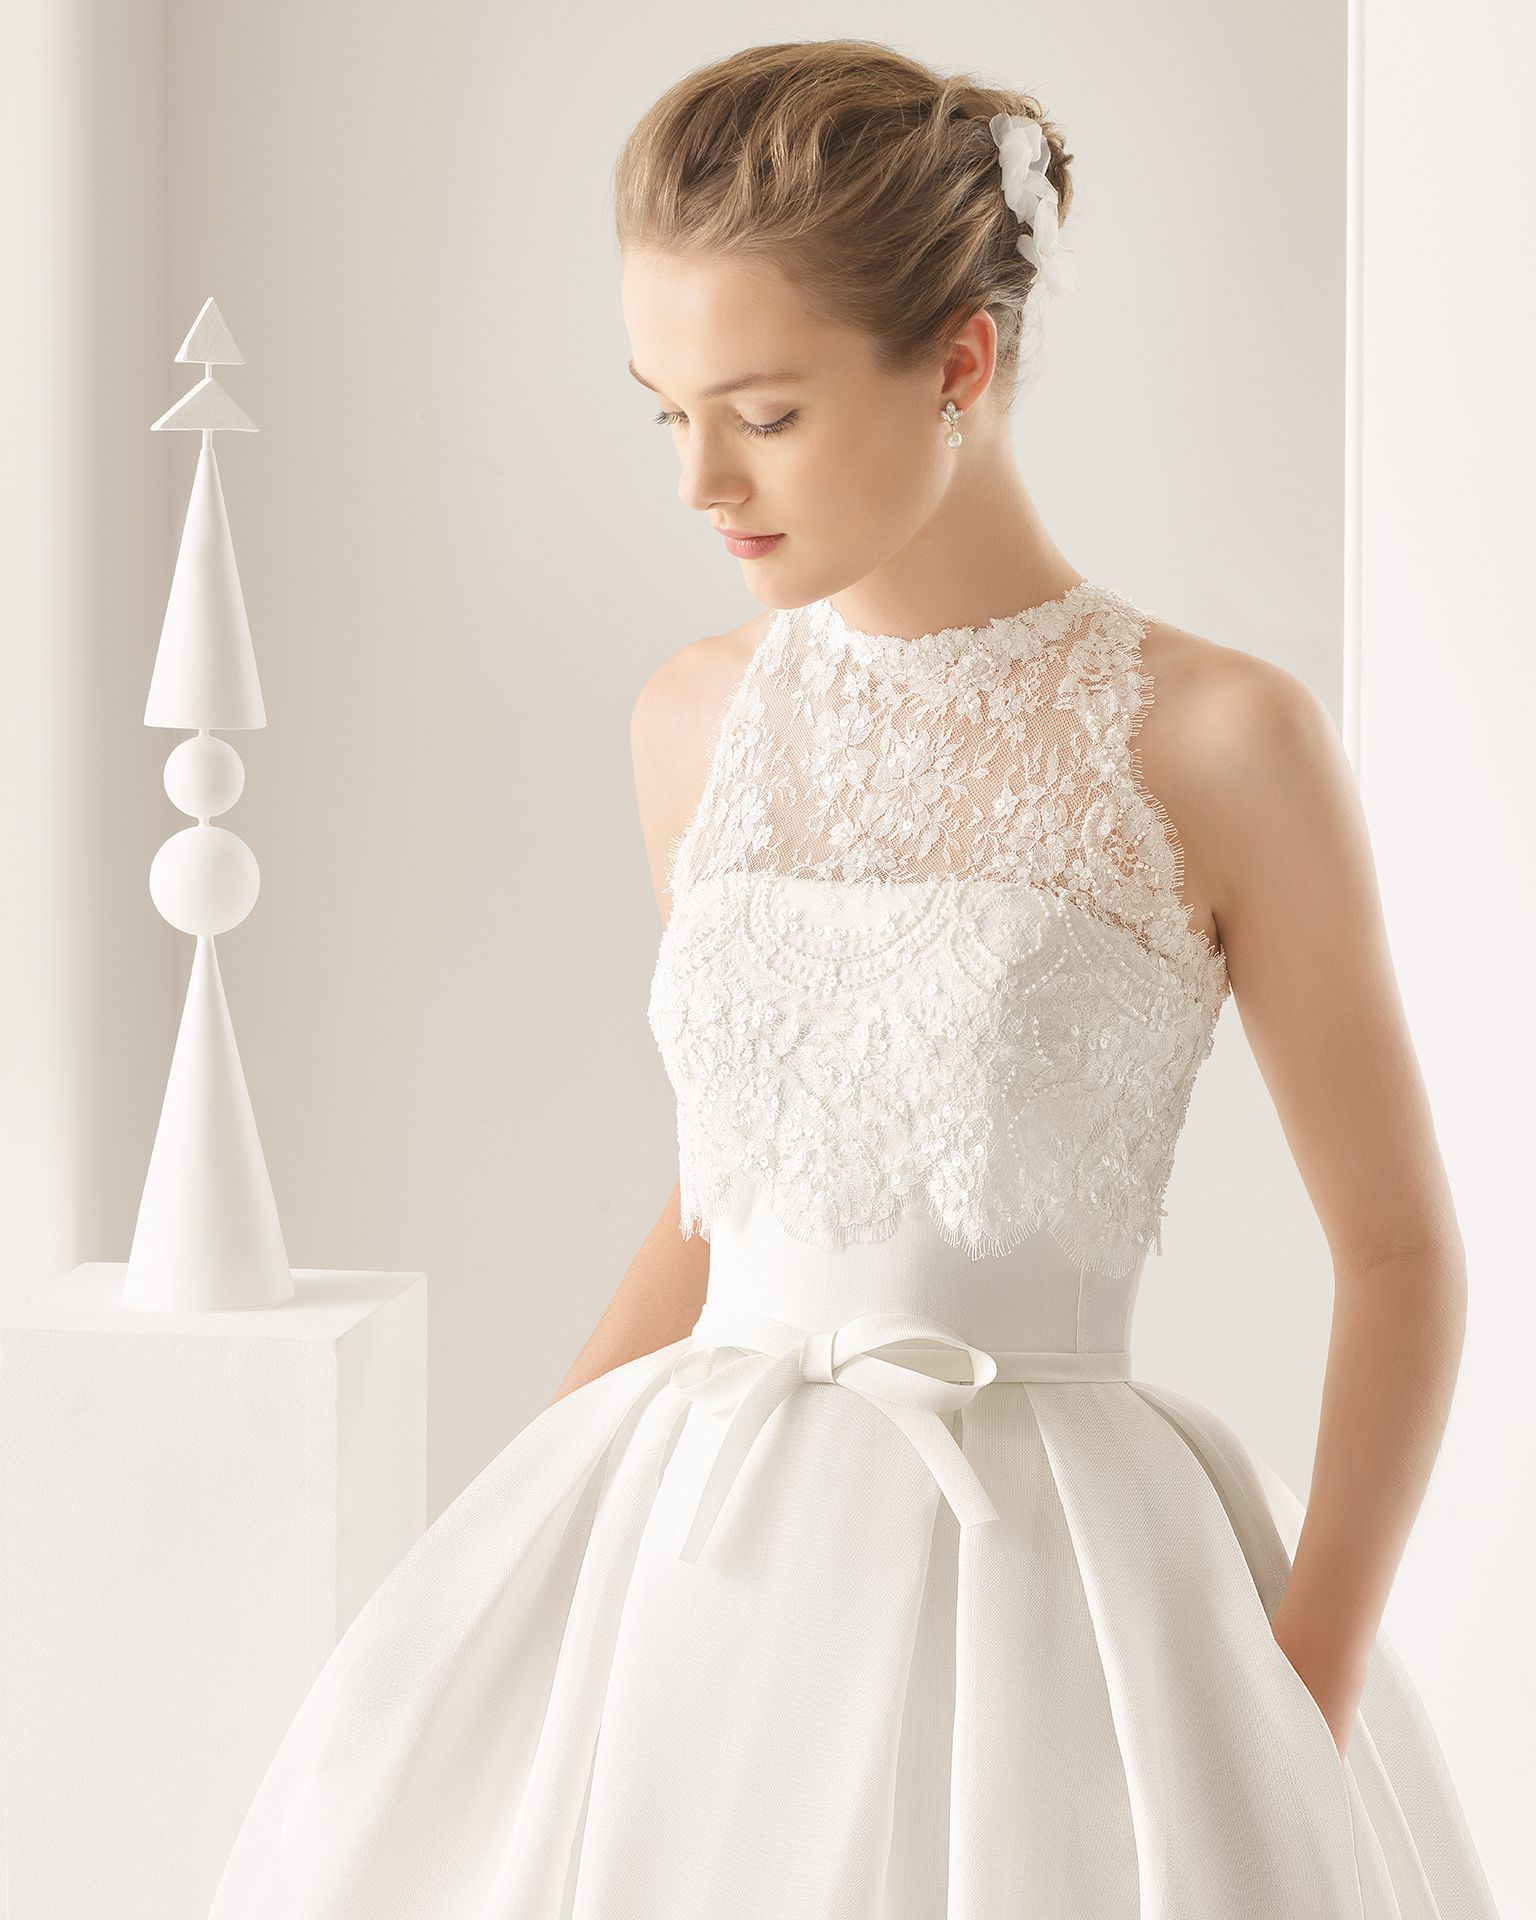 Nectar - 2017 Bridal Collection. Rosa Clará. | Pinterest | Organza ...